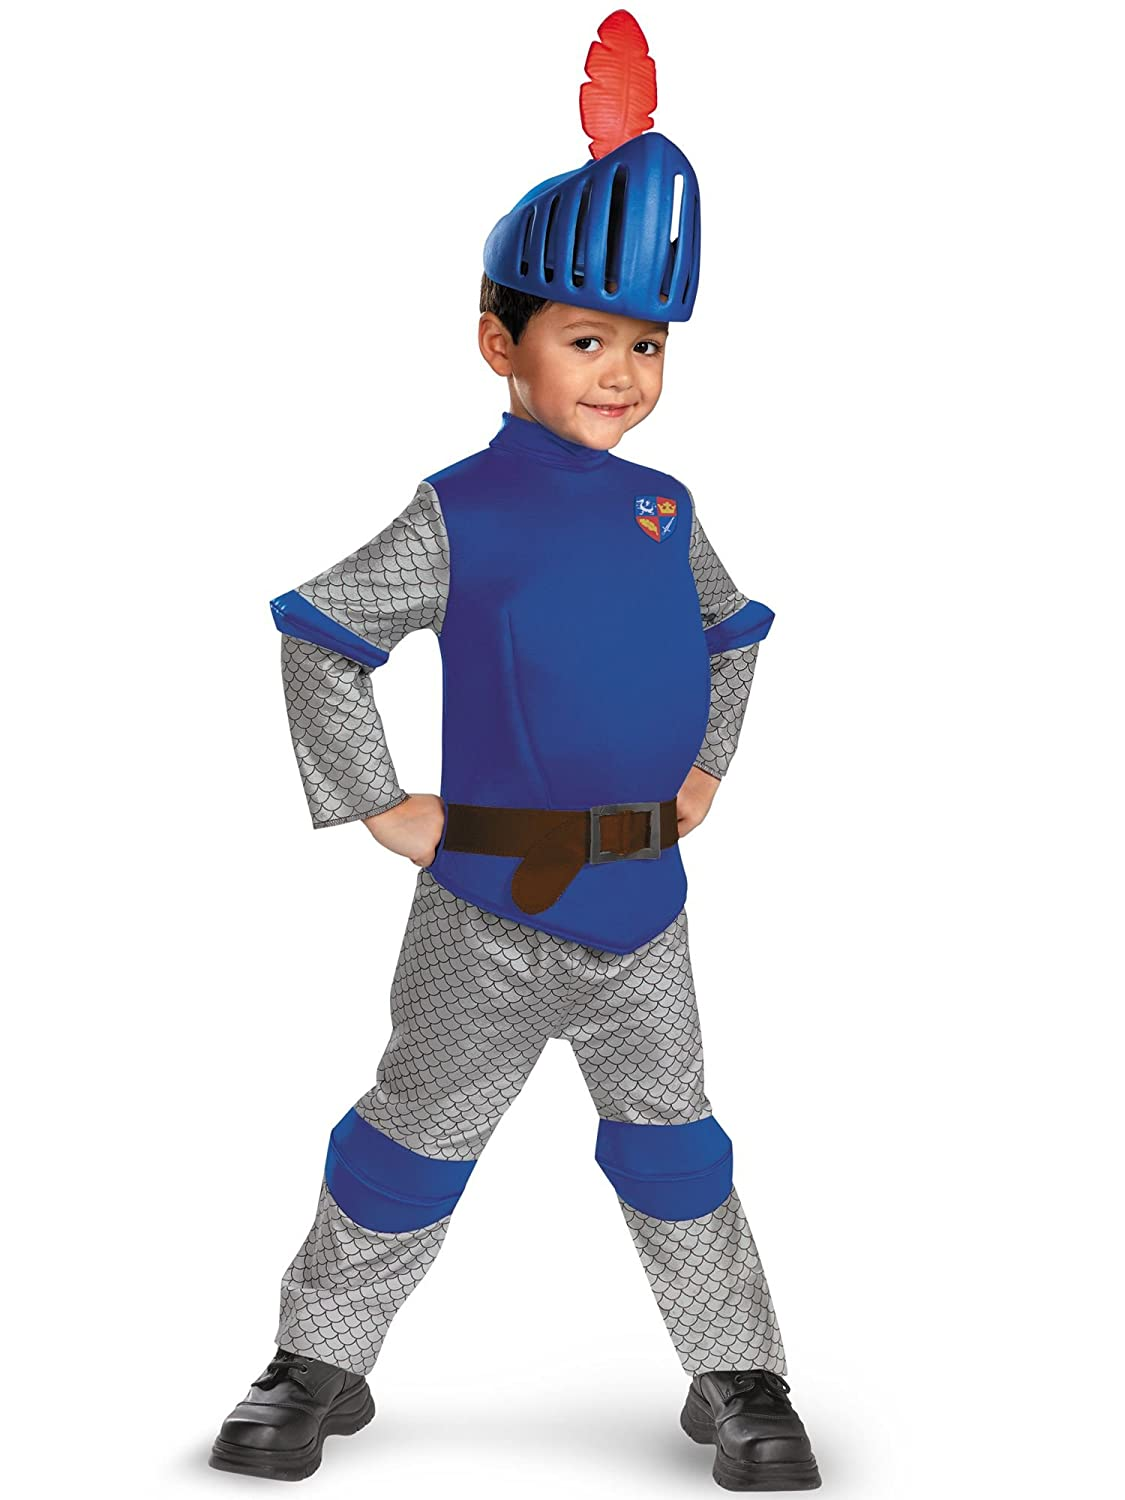 Amazon.com: Mike the Knight Costume for Kids: Toys & Games